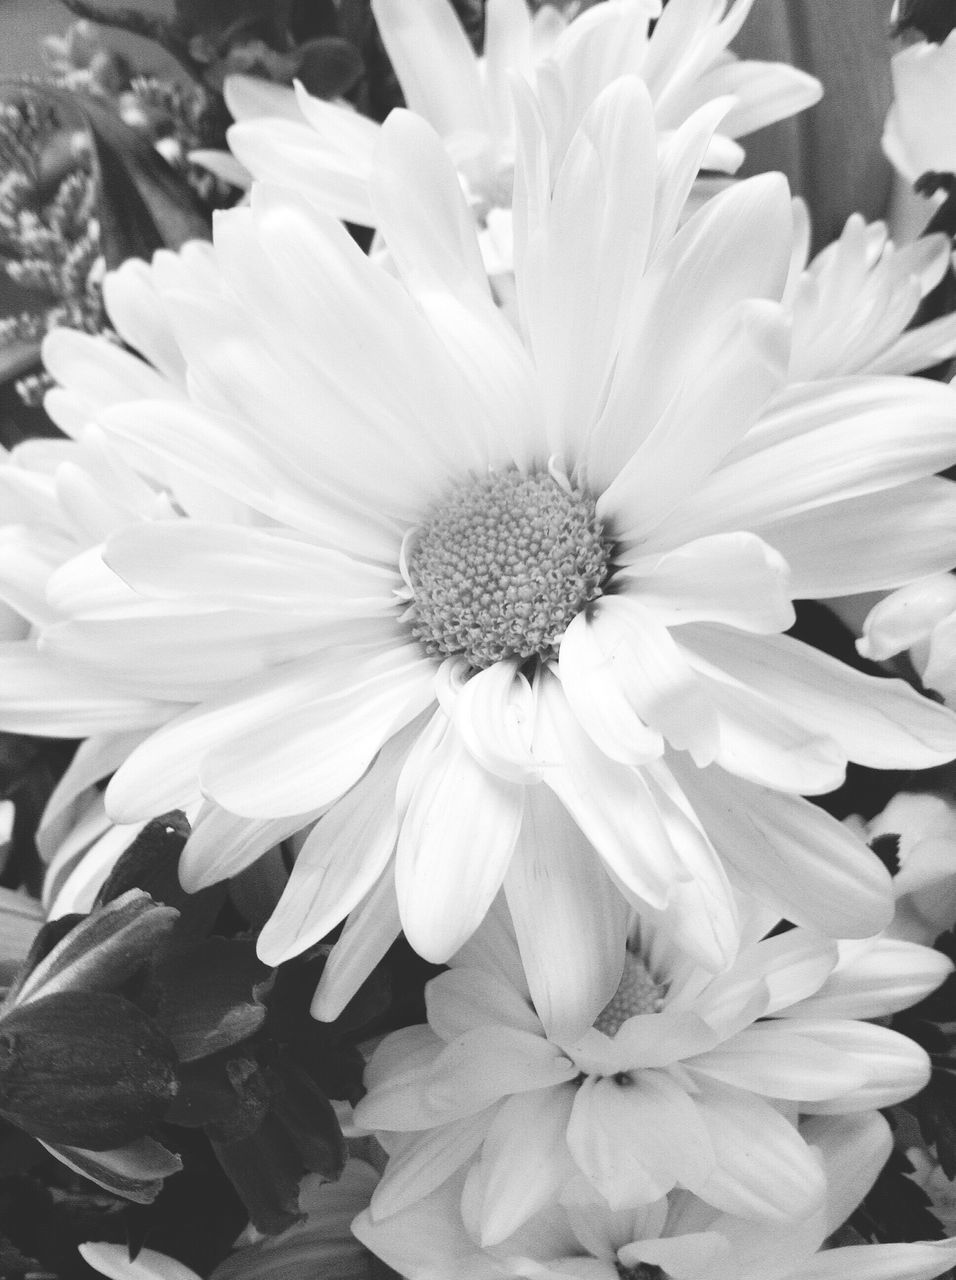 flower, petal, nature, flower head, fragility, beauty in nature, growth, plant, freshness, blooming, no people, outdoors, close-up, day